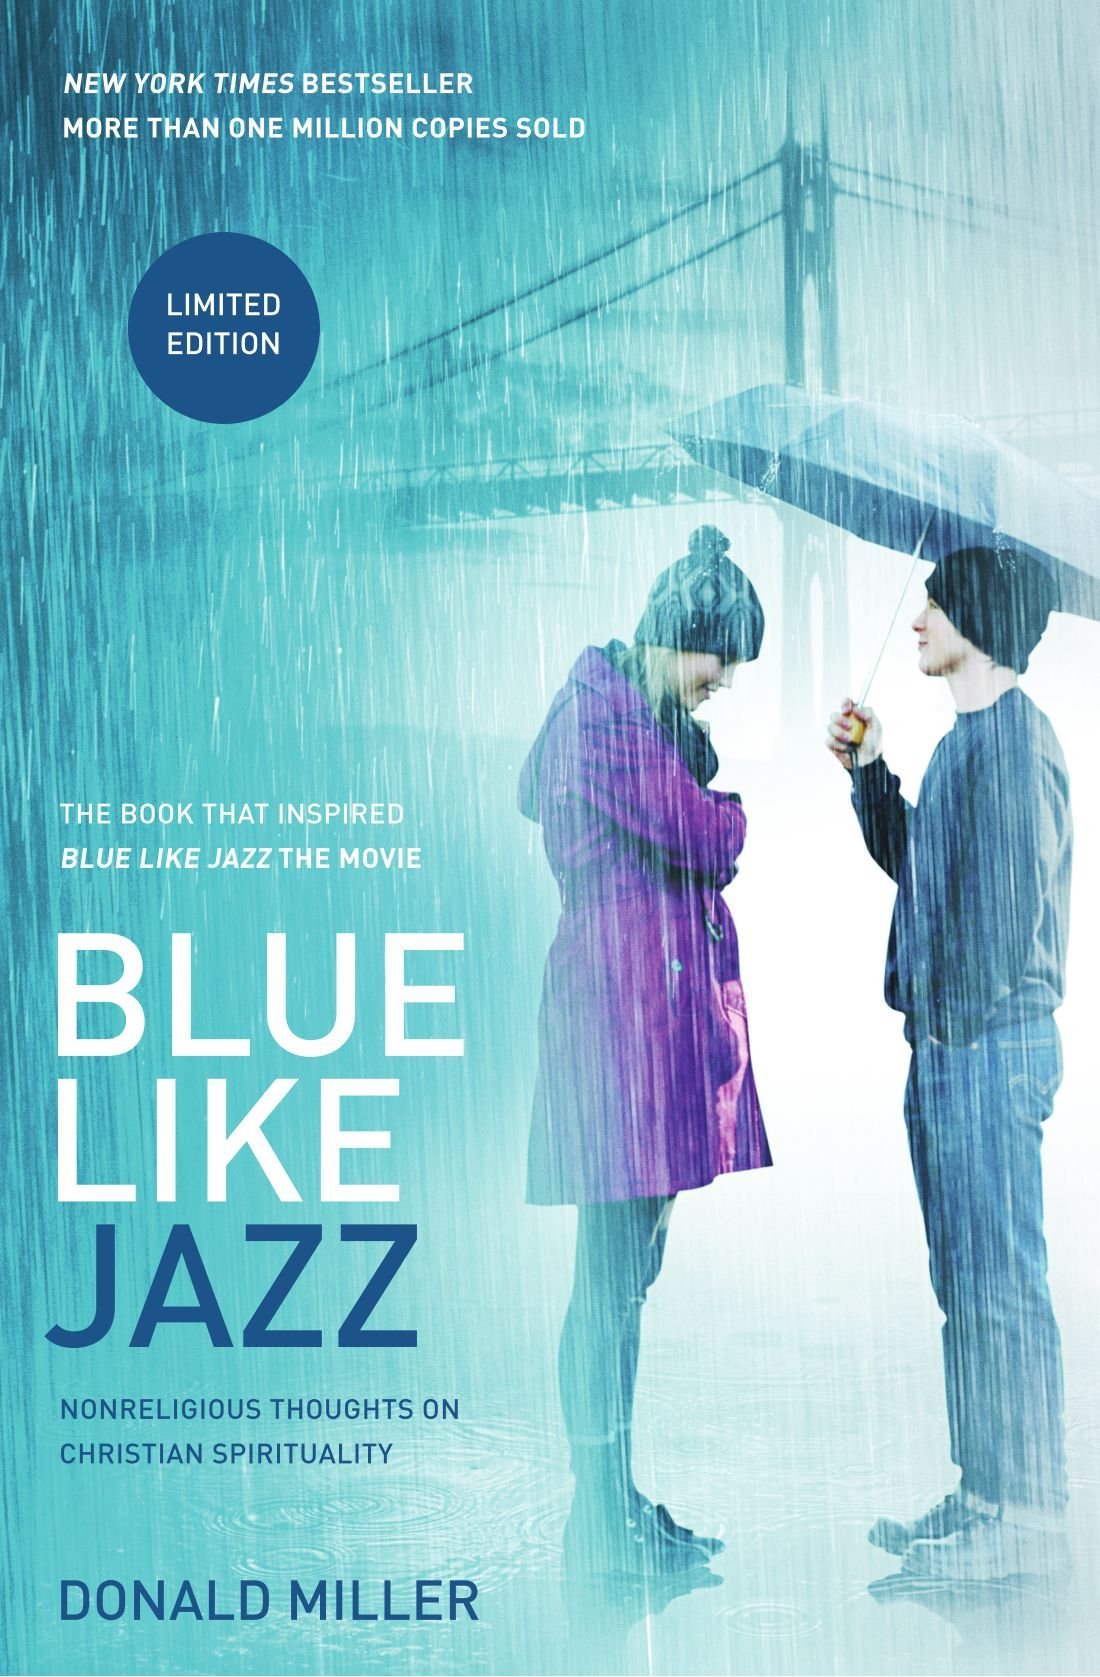 blue like jazz movie edition nonreligious thoughts on christian spirituality